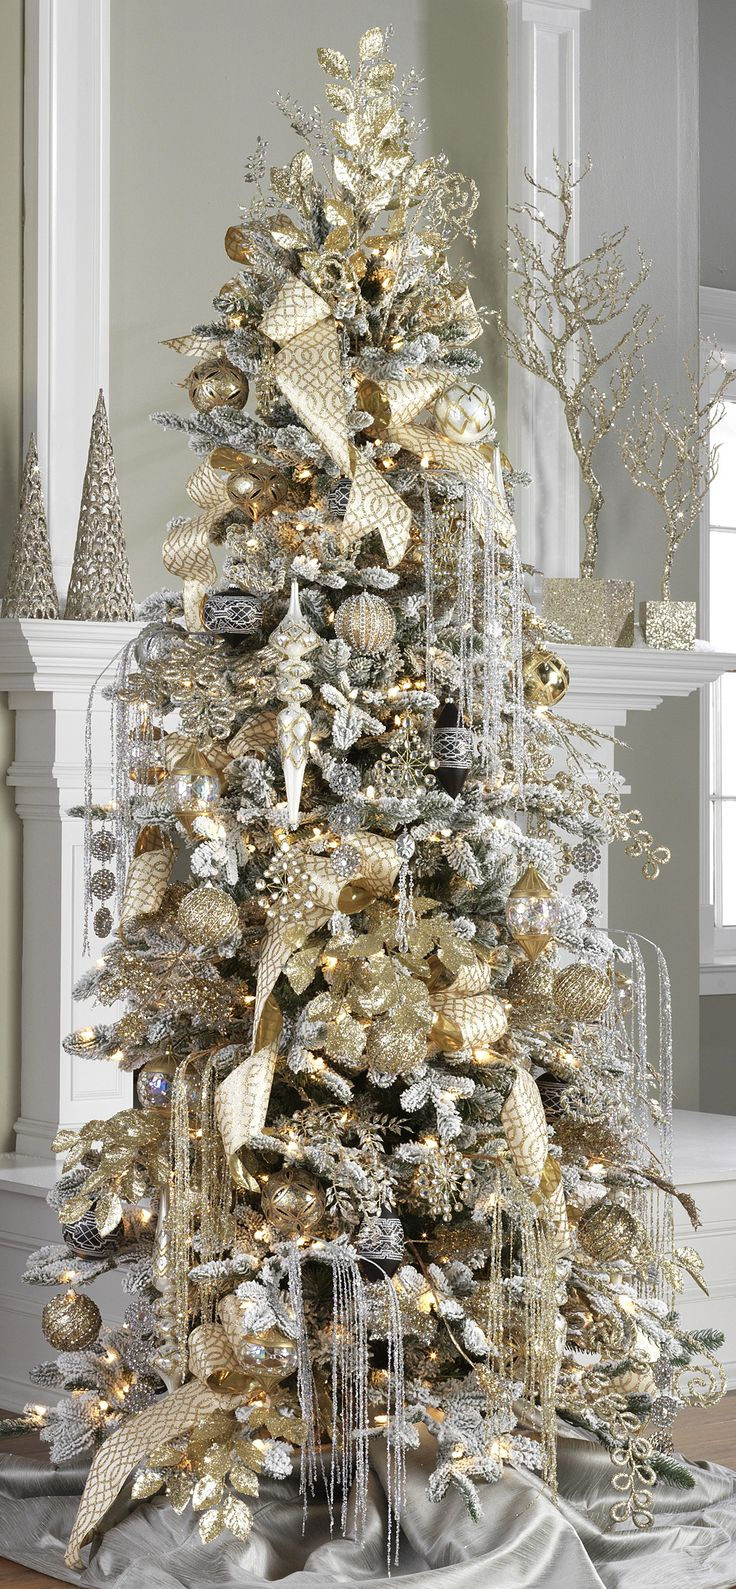 Best 25 elegant christmas trees ideas only on pinterest for Classy xmas decorations